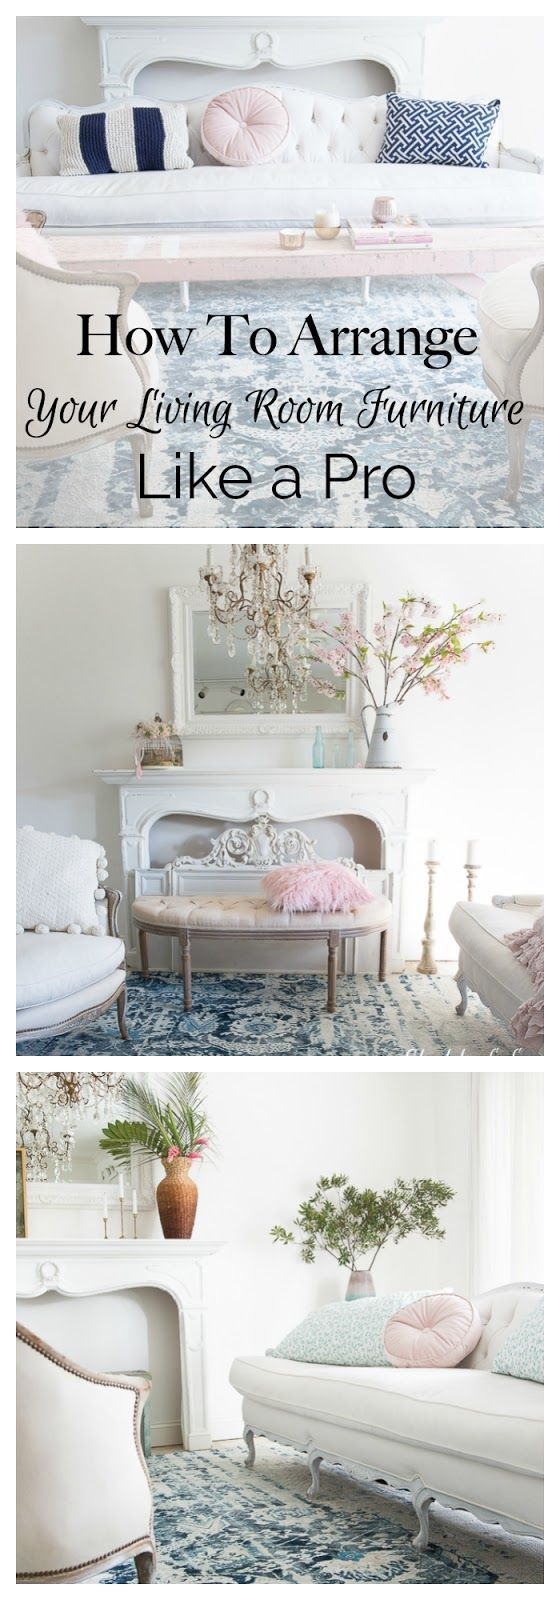 520 best American Farmhouse Style images on Pinterest   Home ideas ...